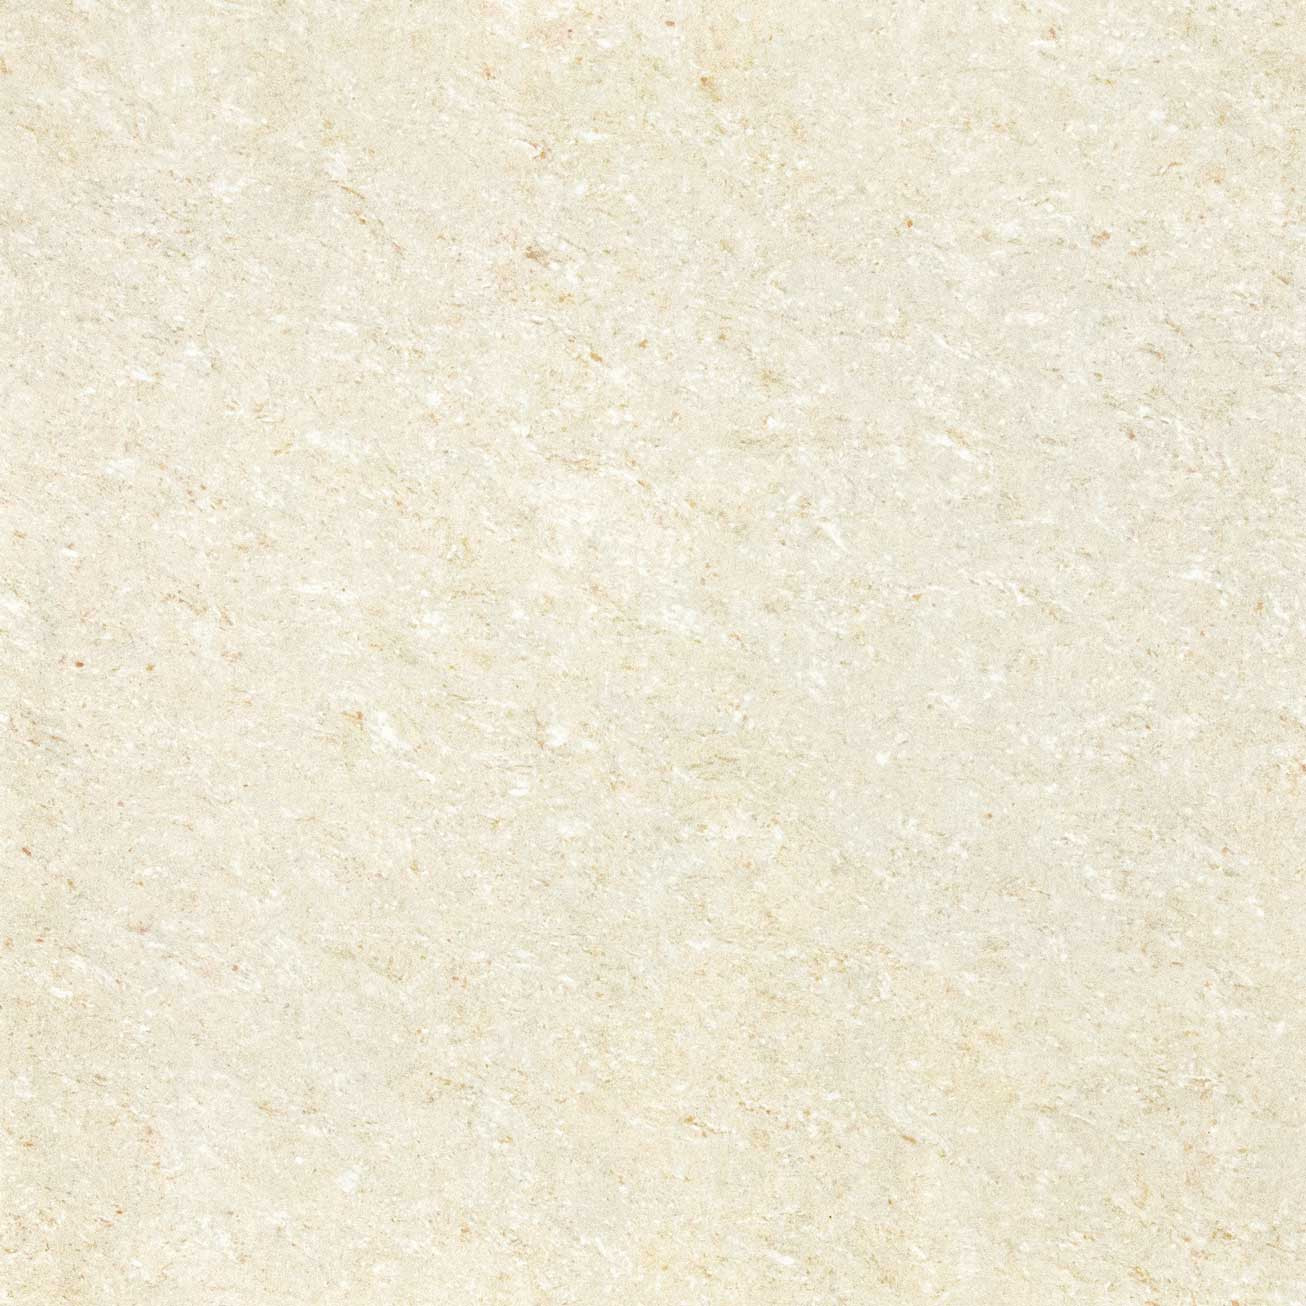 Tropic Yellow Grestek Double Charge Tiles Products 600 X 600